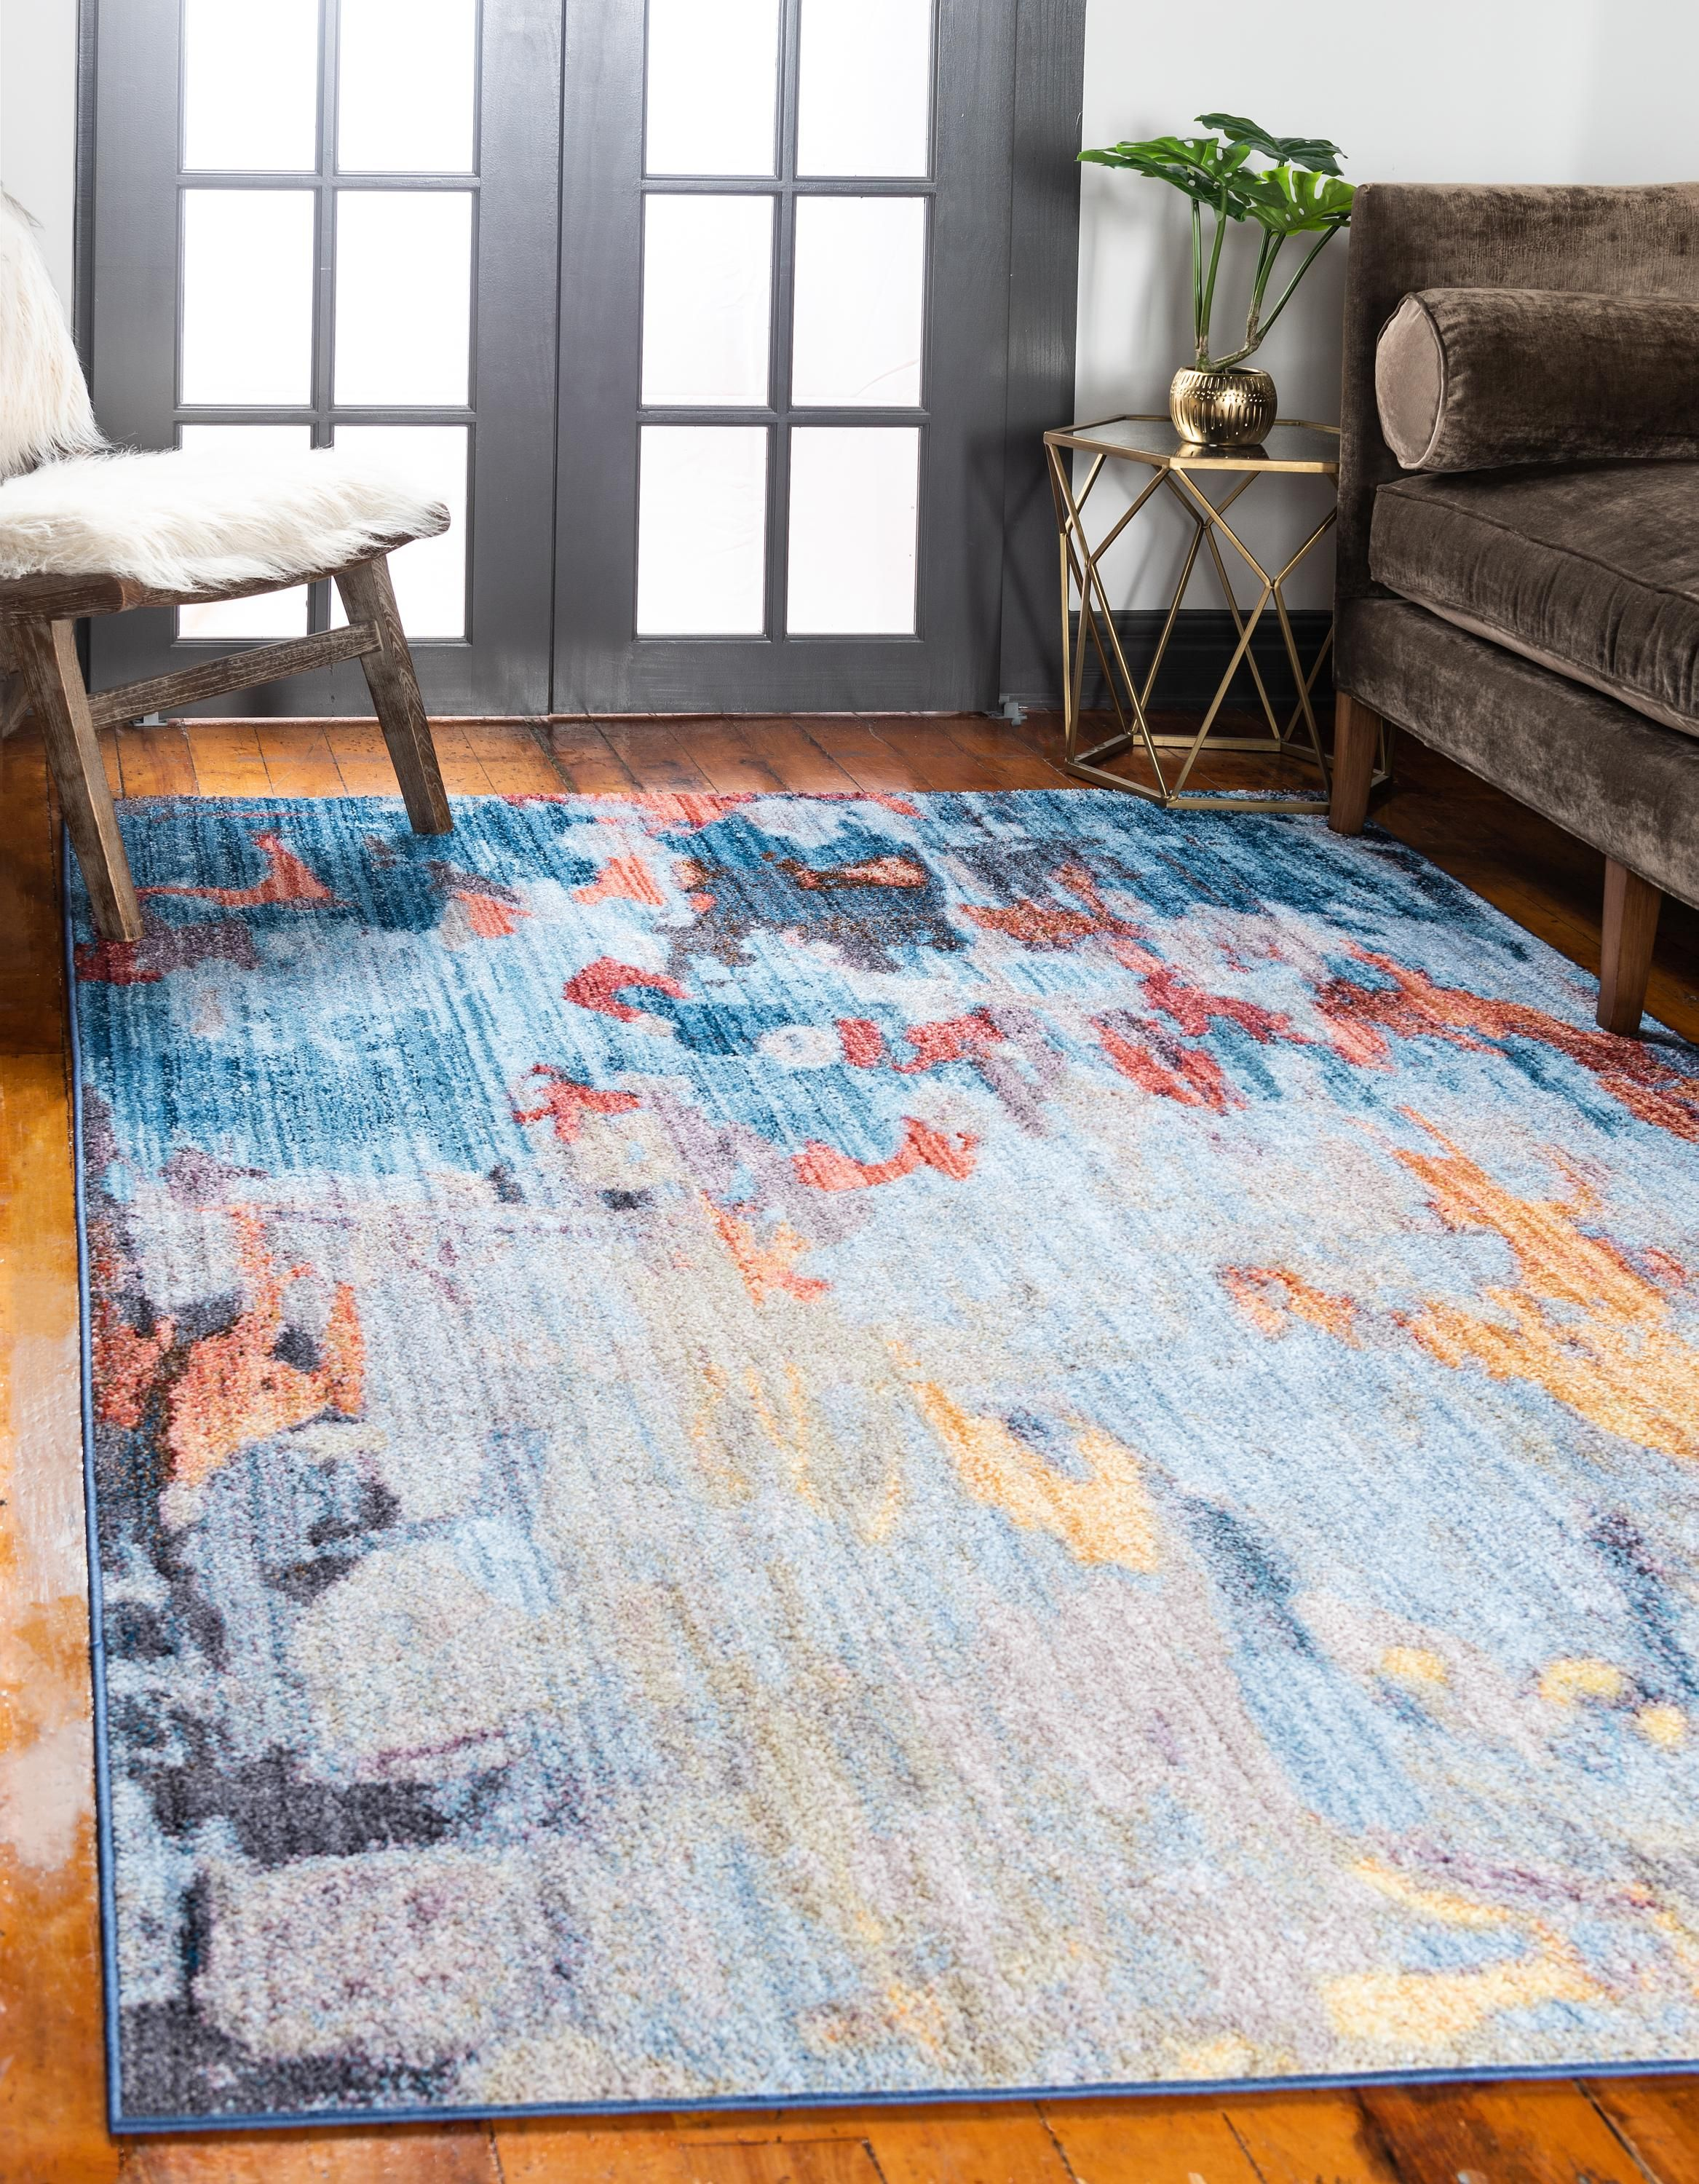 Multicolor Jill Zarin 5 X 8 Downtown Collection Rug Rugs Com Rugs In Living Room Room Rugs Blue Gray Area Rug